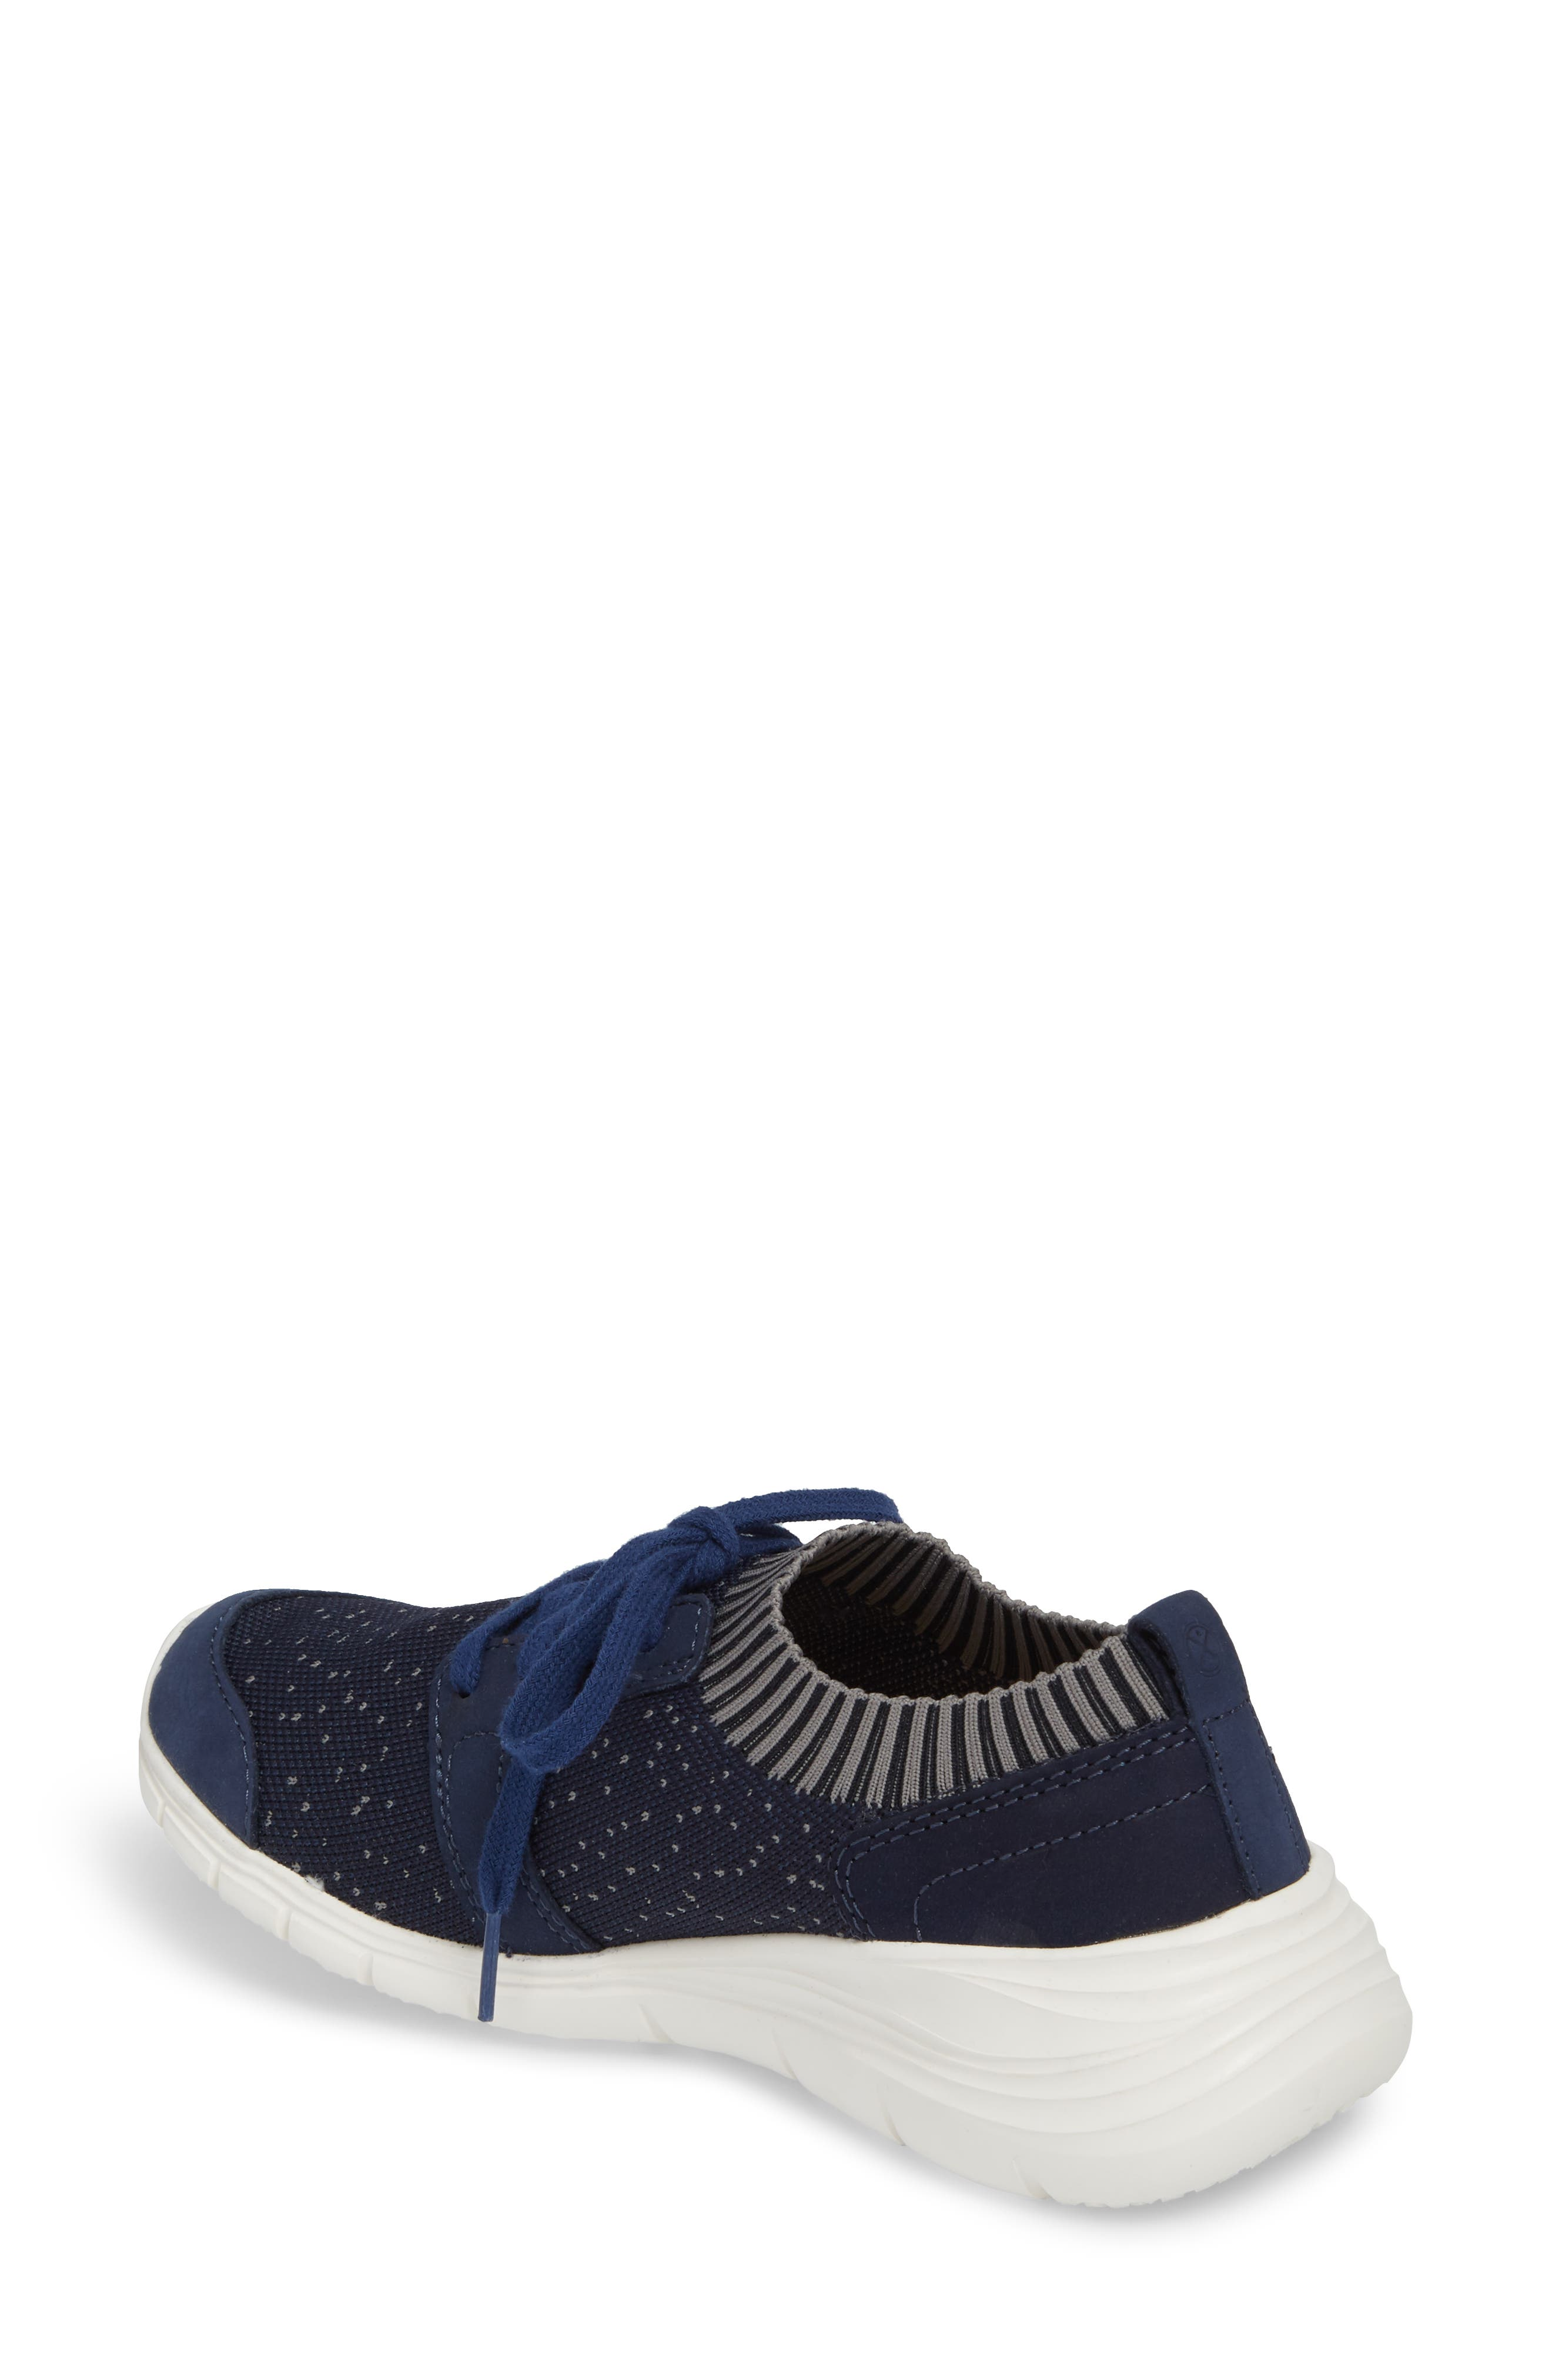 Cypress Knit Sneaker,                             Alternate thumbnail 2, color,                             Royal Navy Fabric